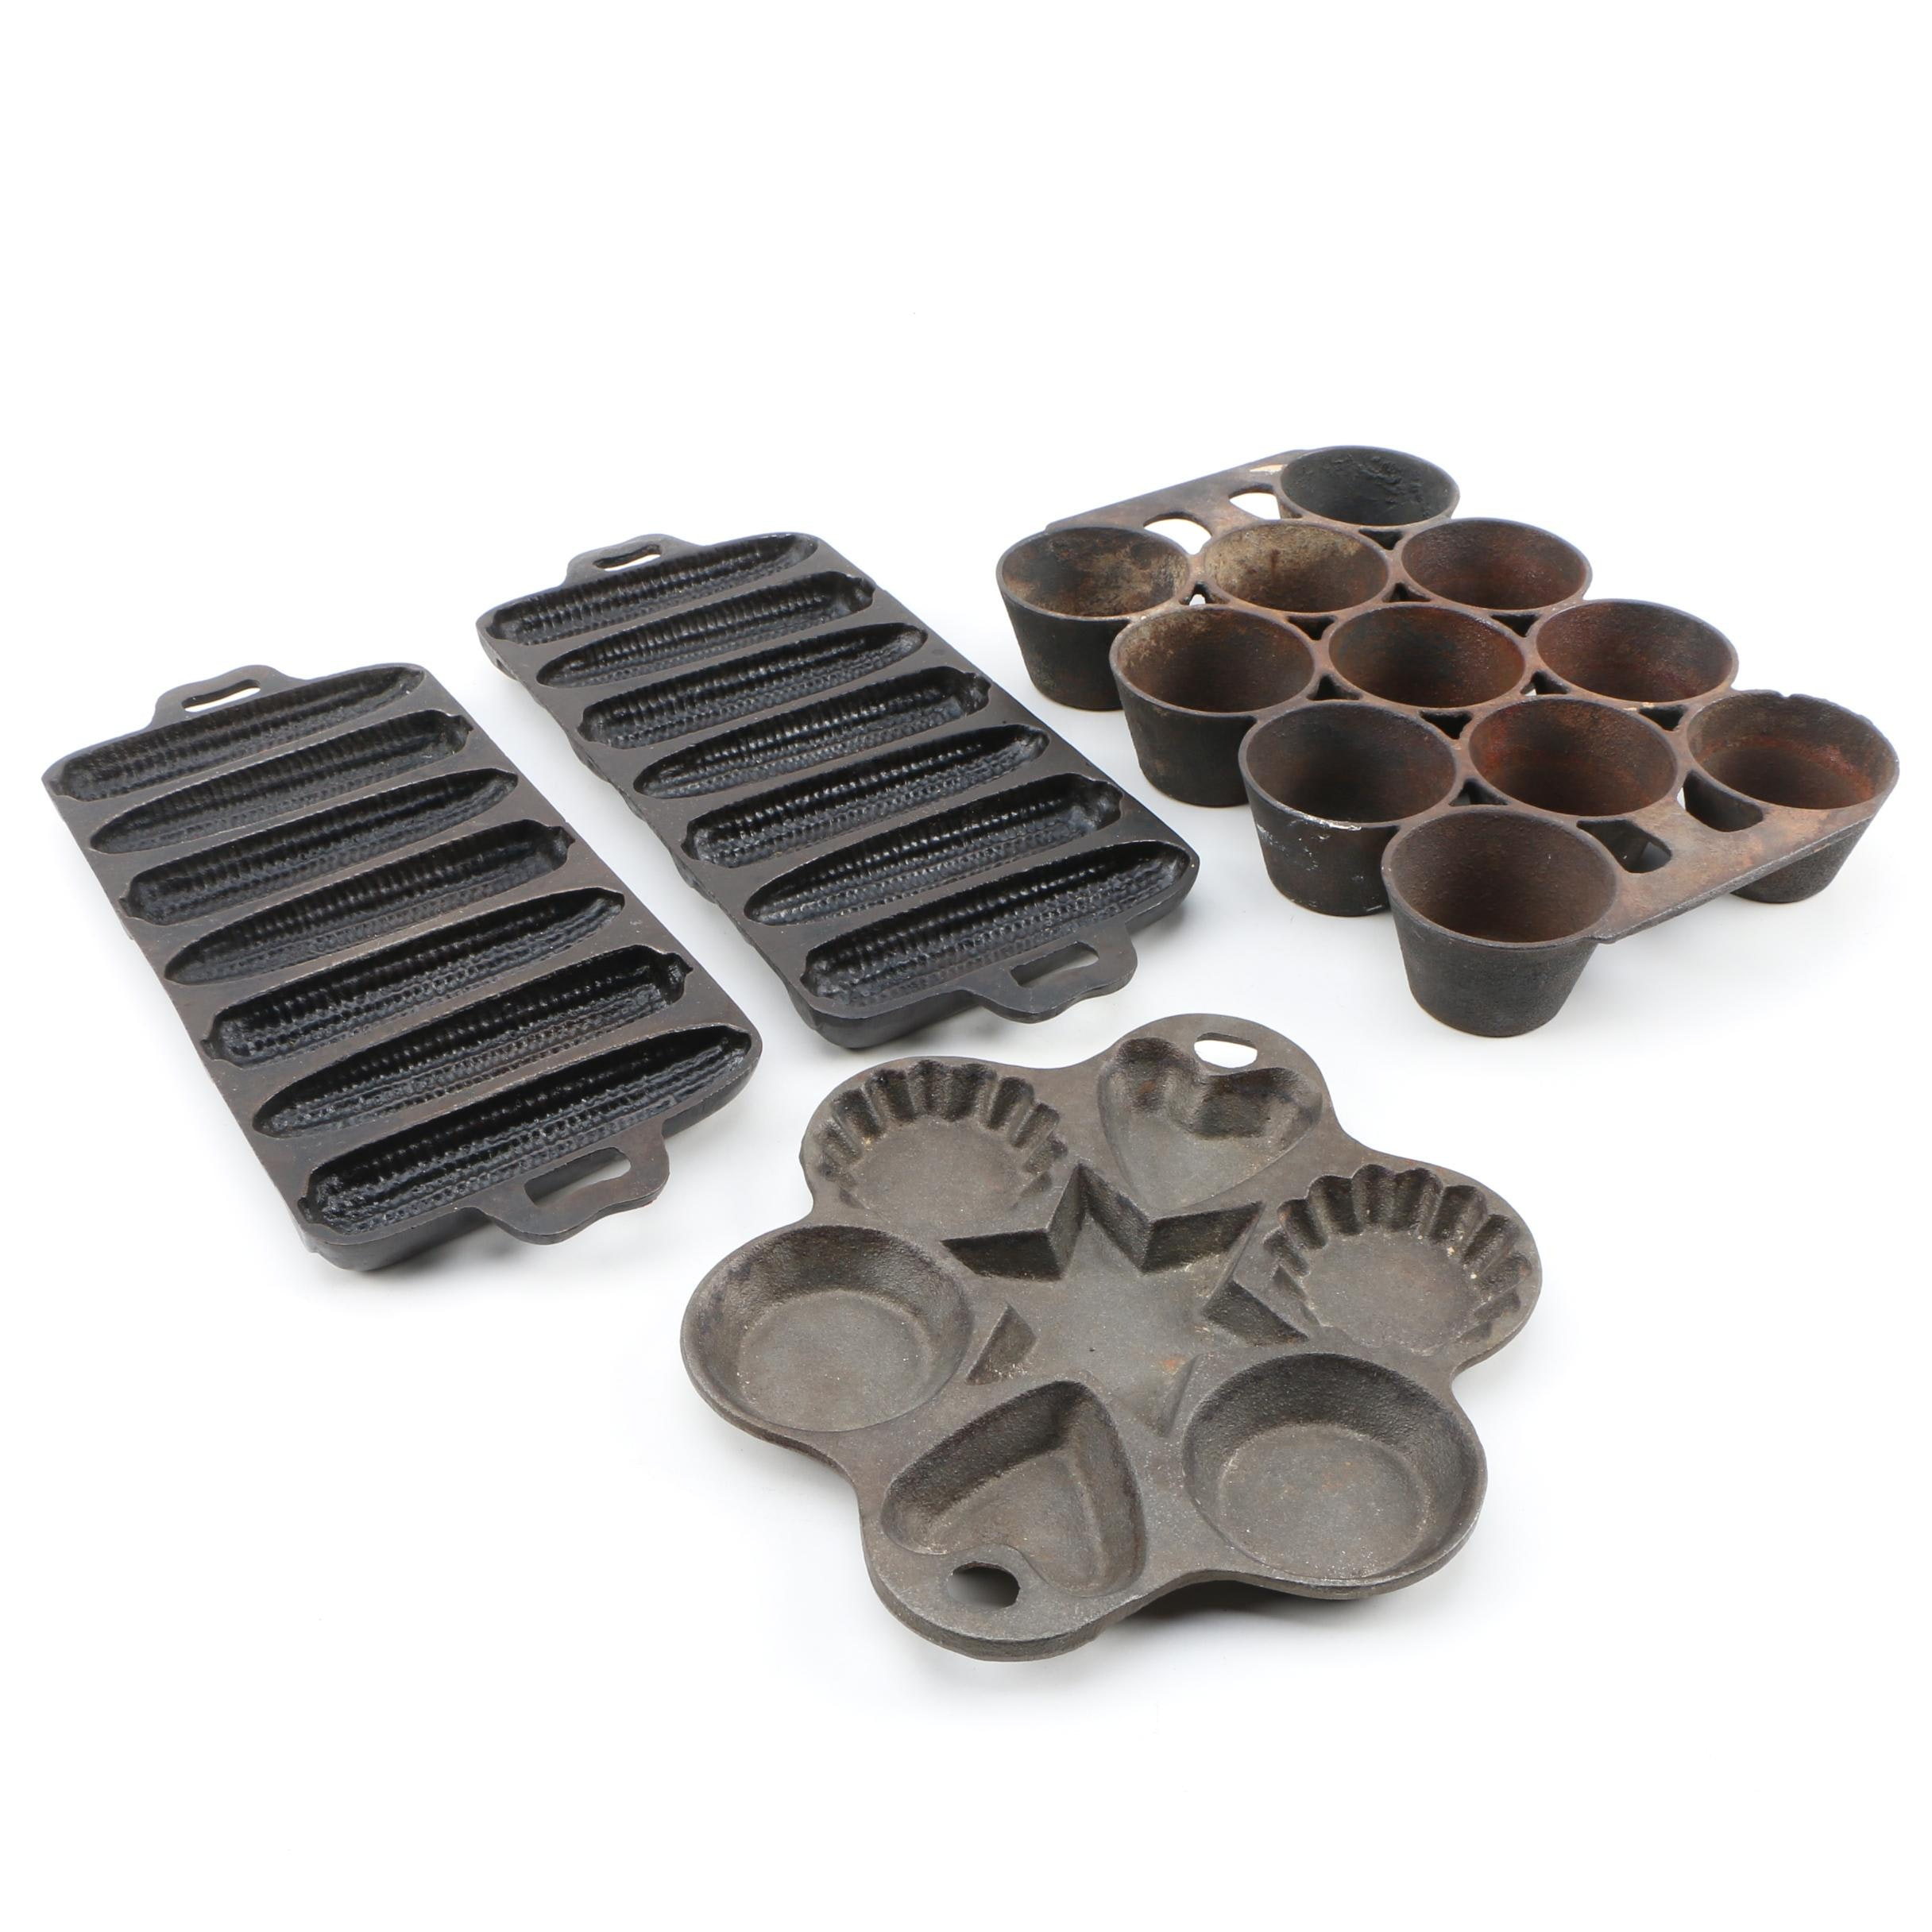 Griswold Cast Iron Muffin Tin, 1880-1907 with other Cast Iron Molds